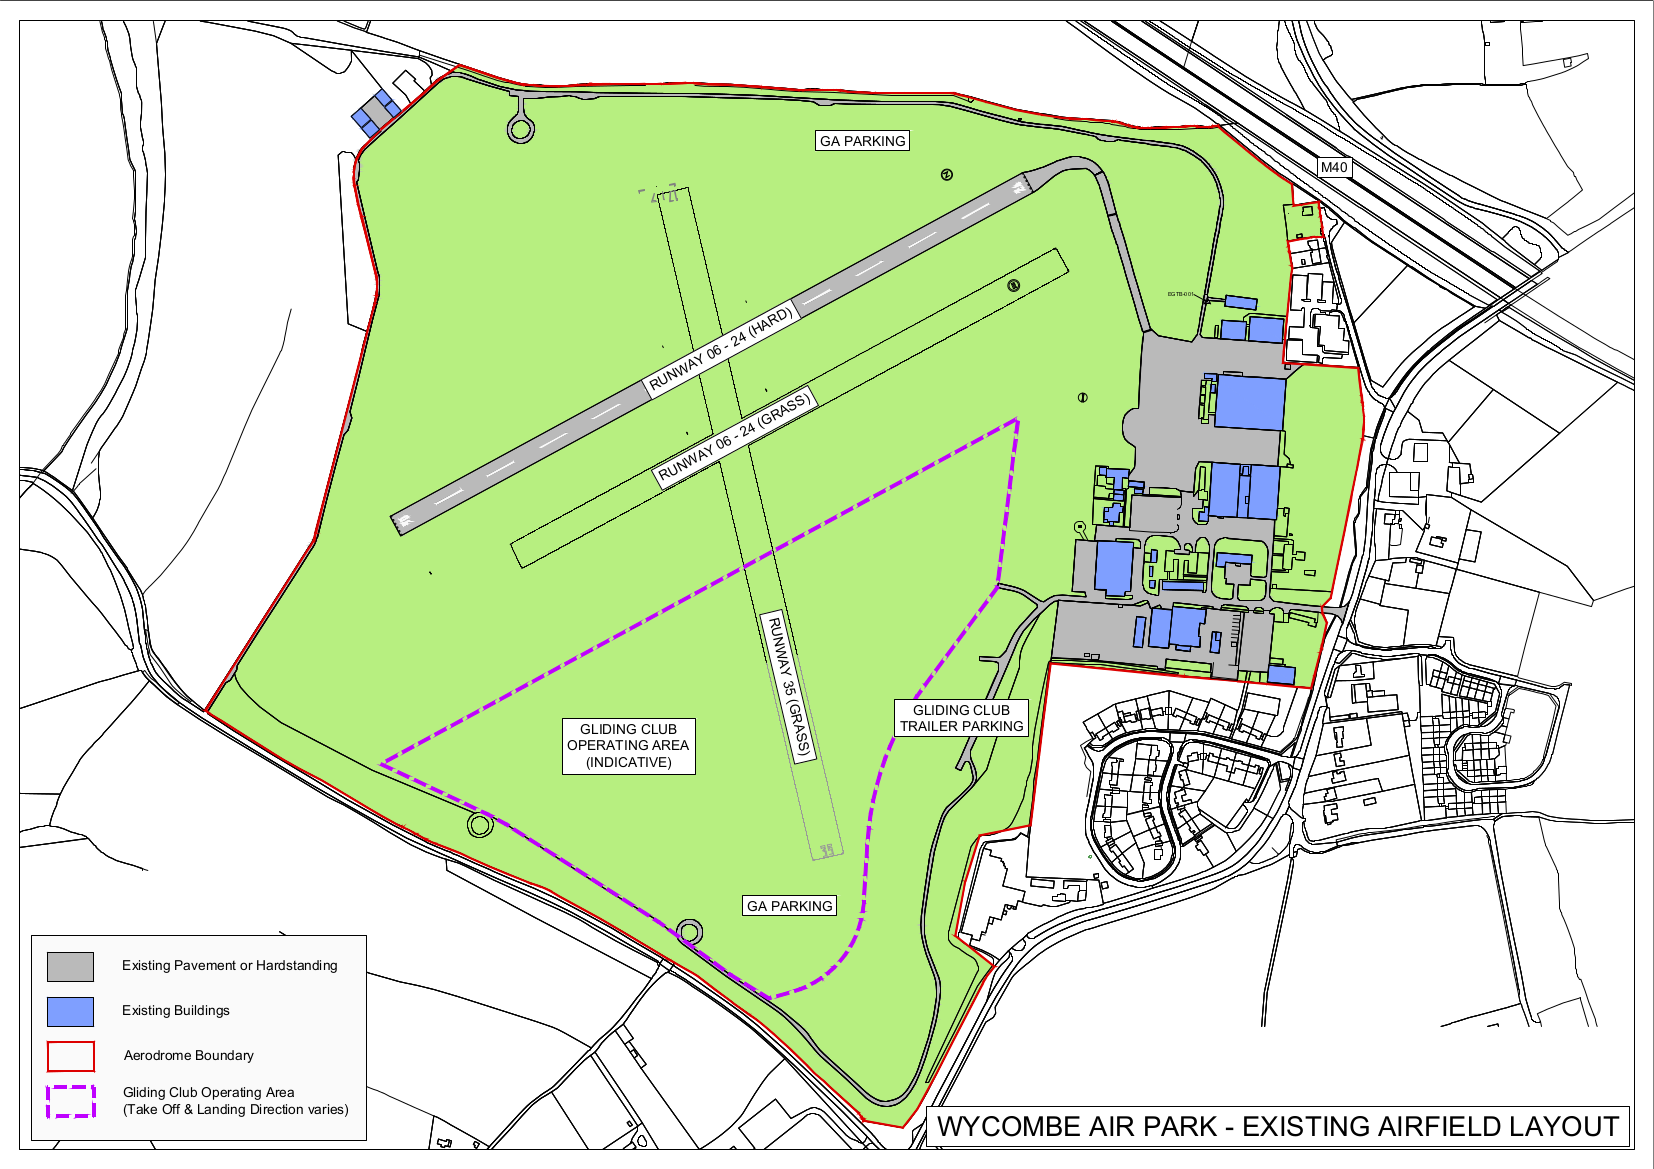 This map shows the existing airfield layout, including the air park boundaries, runway 35 (running north to south), grass runway 06-24 (running east to west), and hard runway 06-24 (running east to west and positioned north of grass runway 06-24).